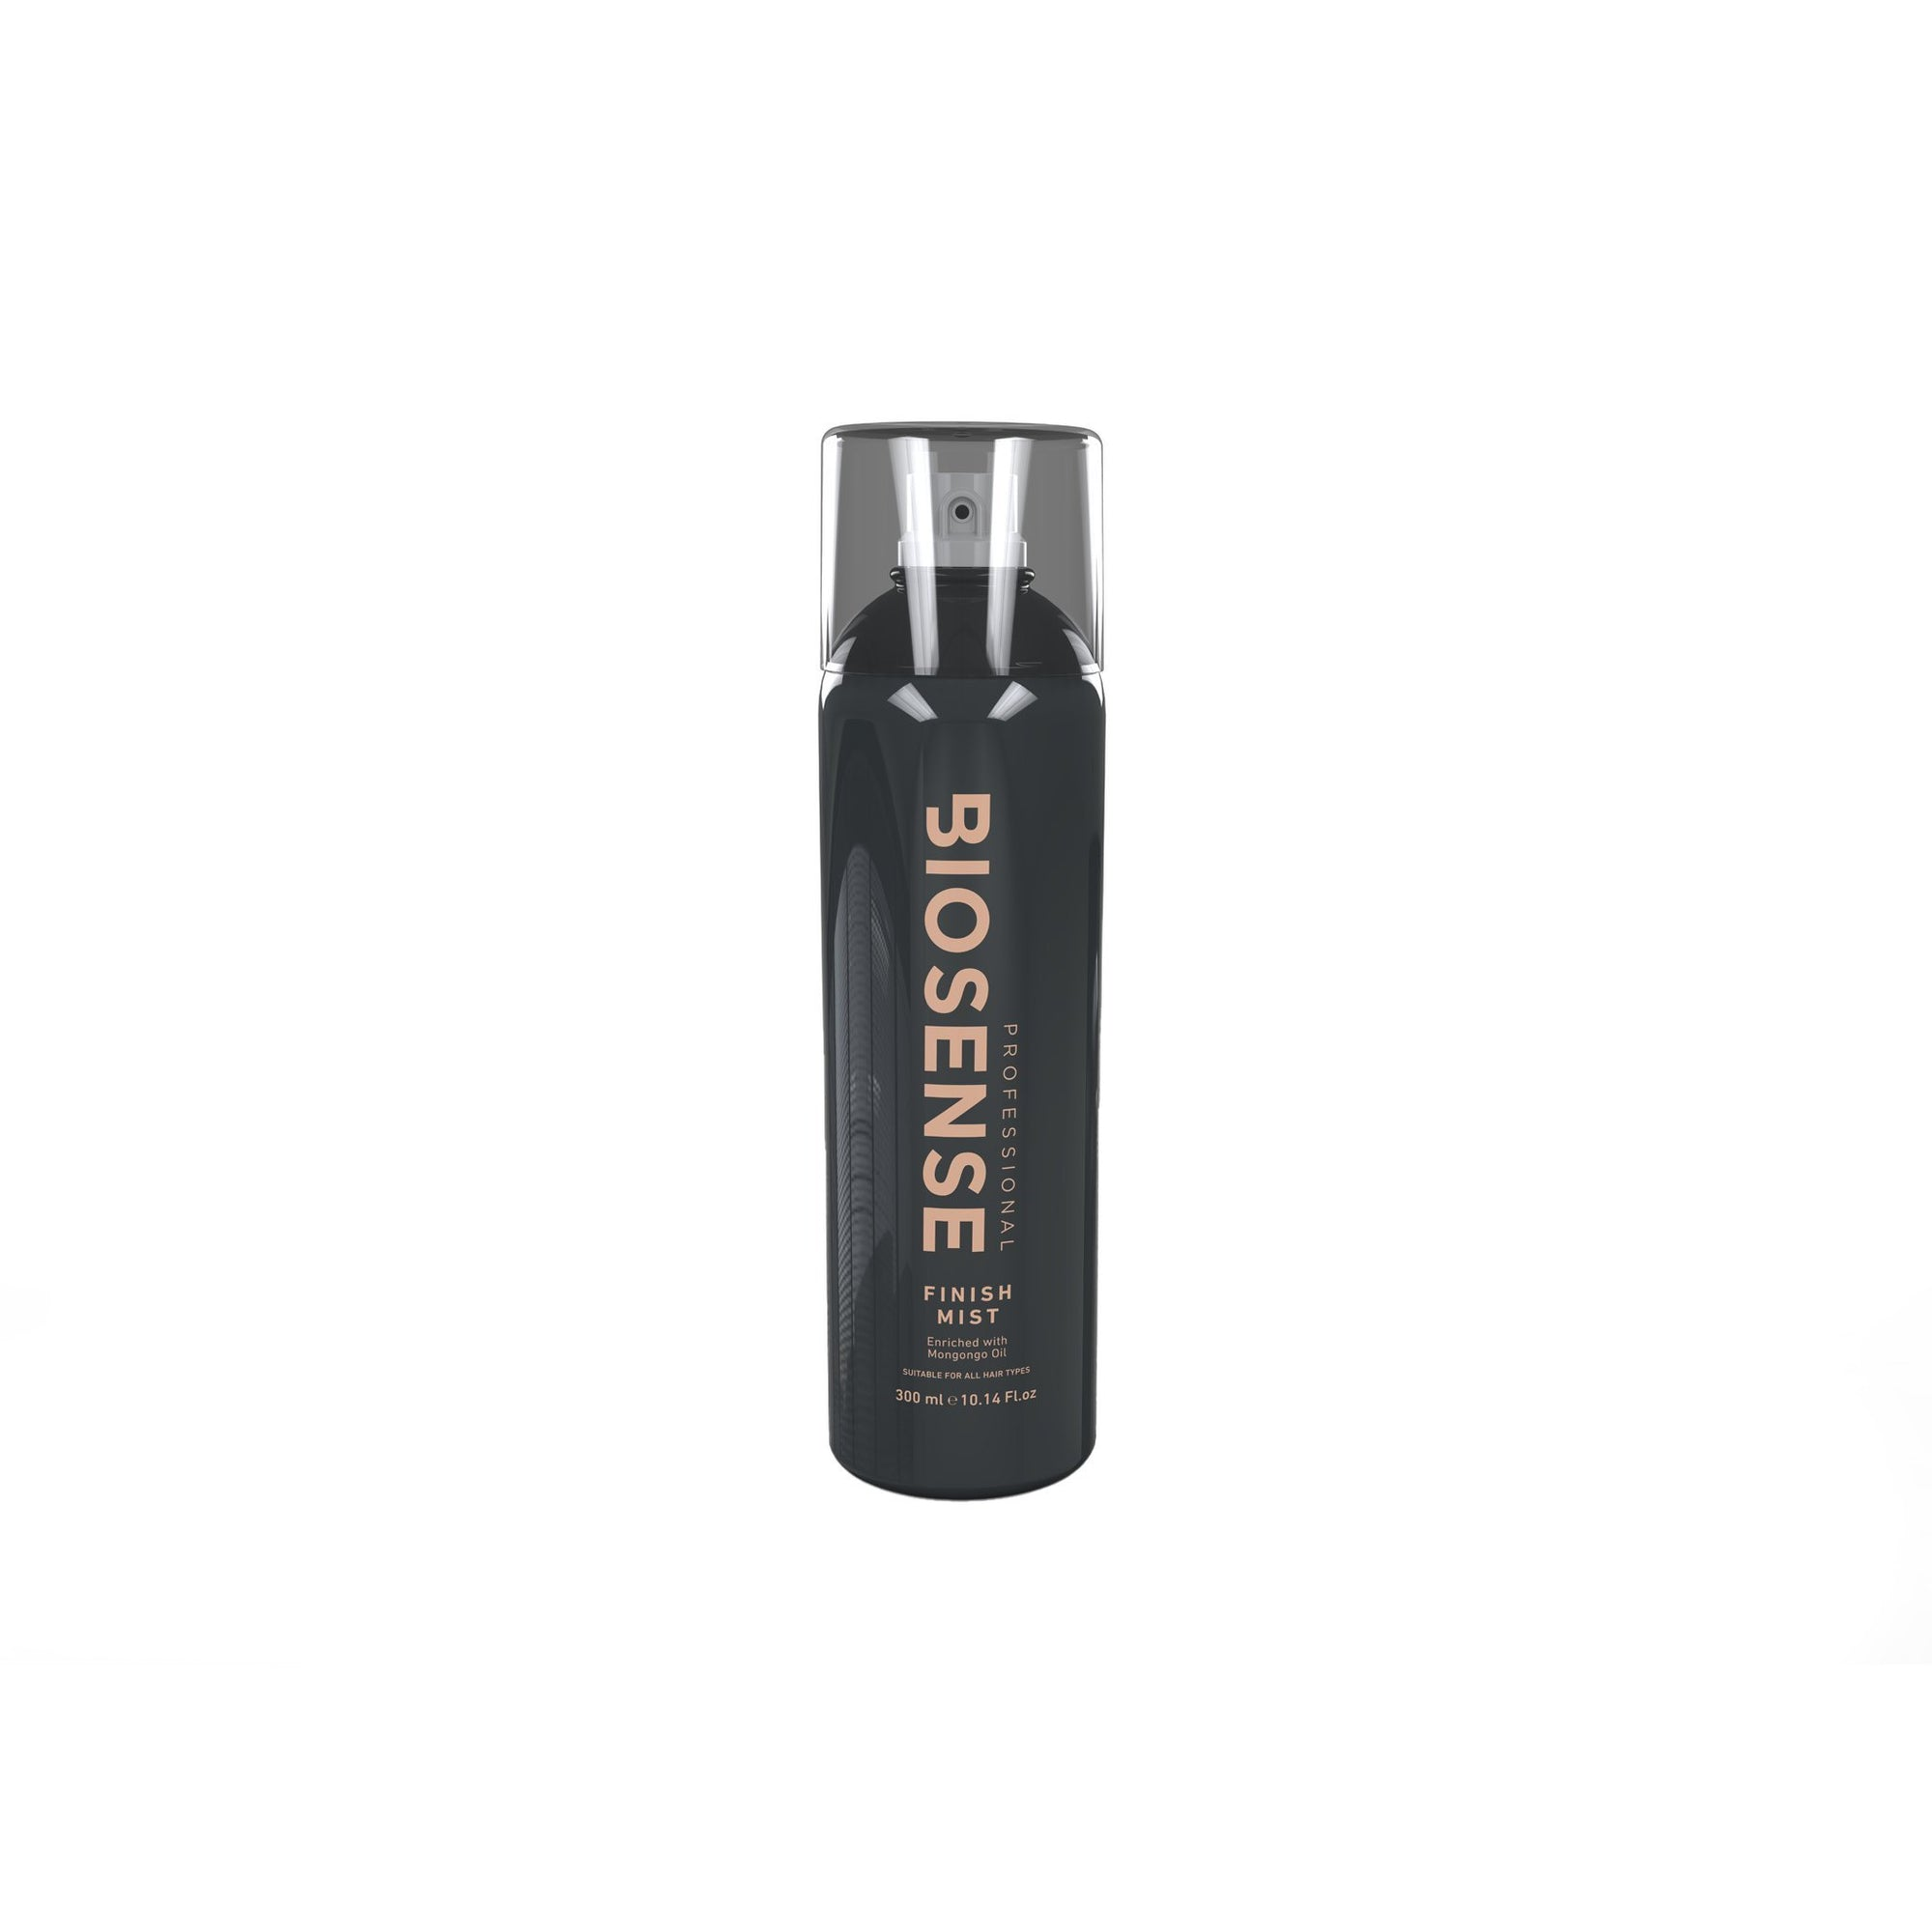 Biosense Finish Mist Hairspray 300ml